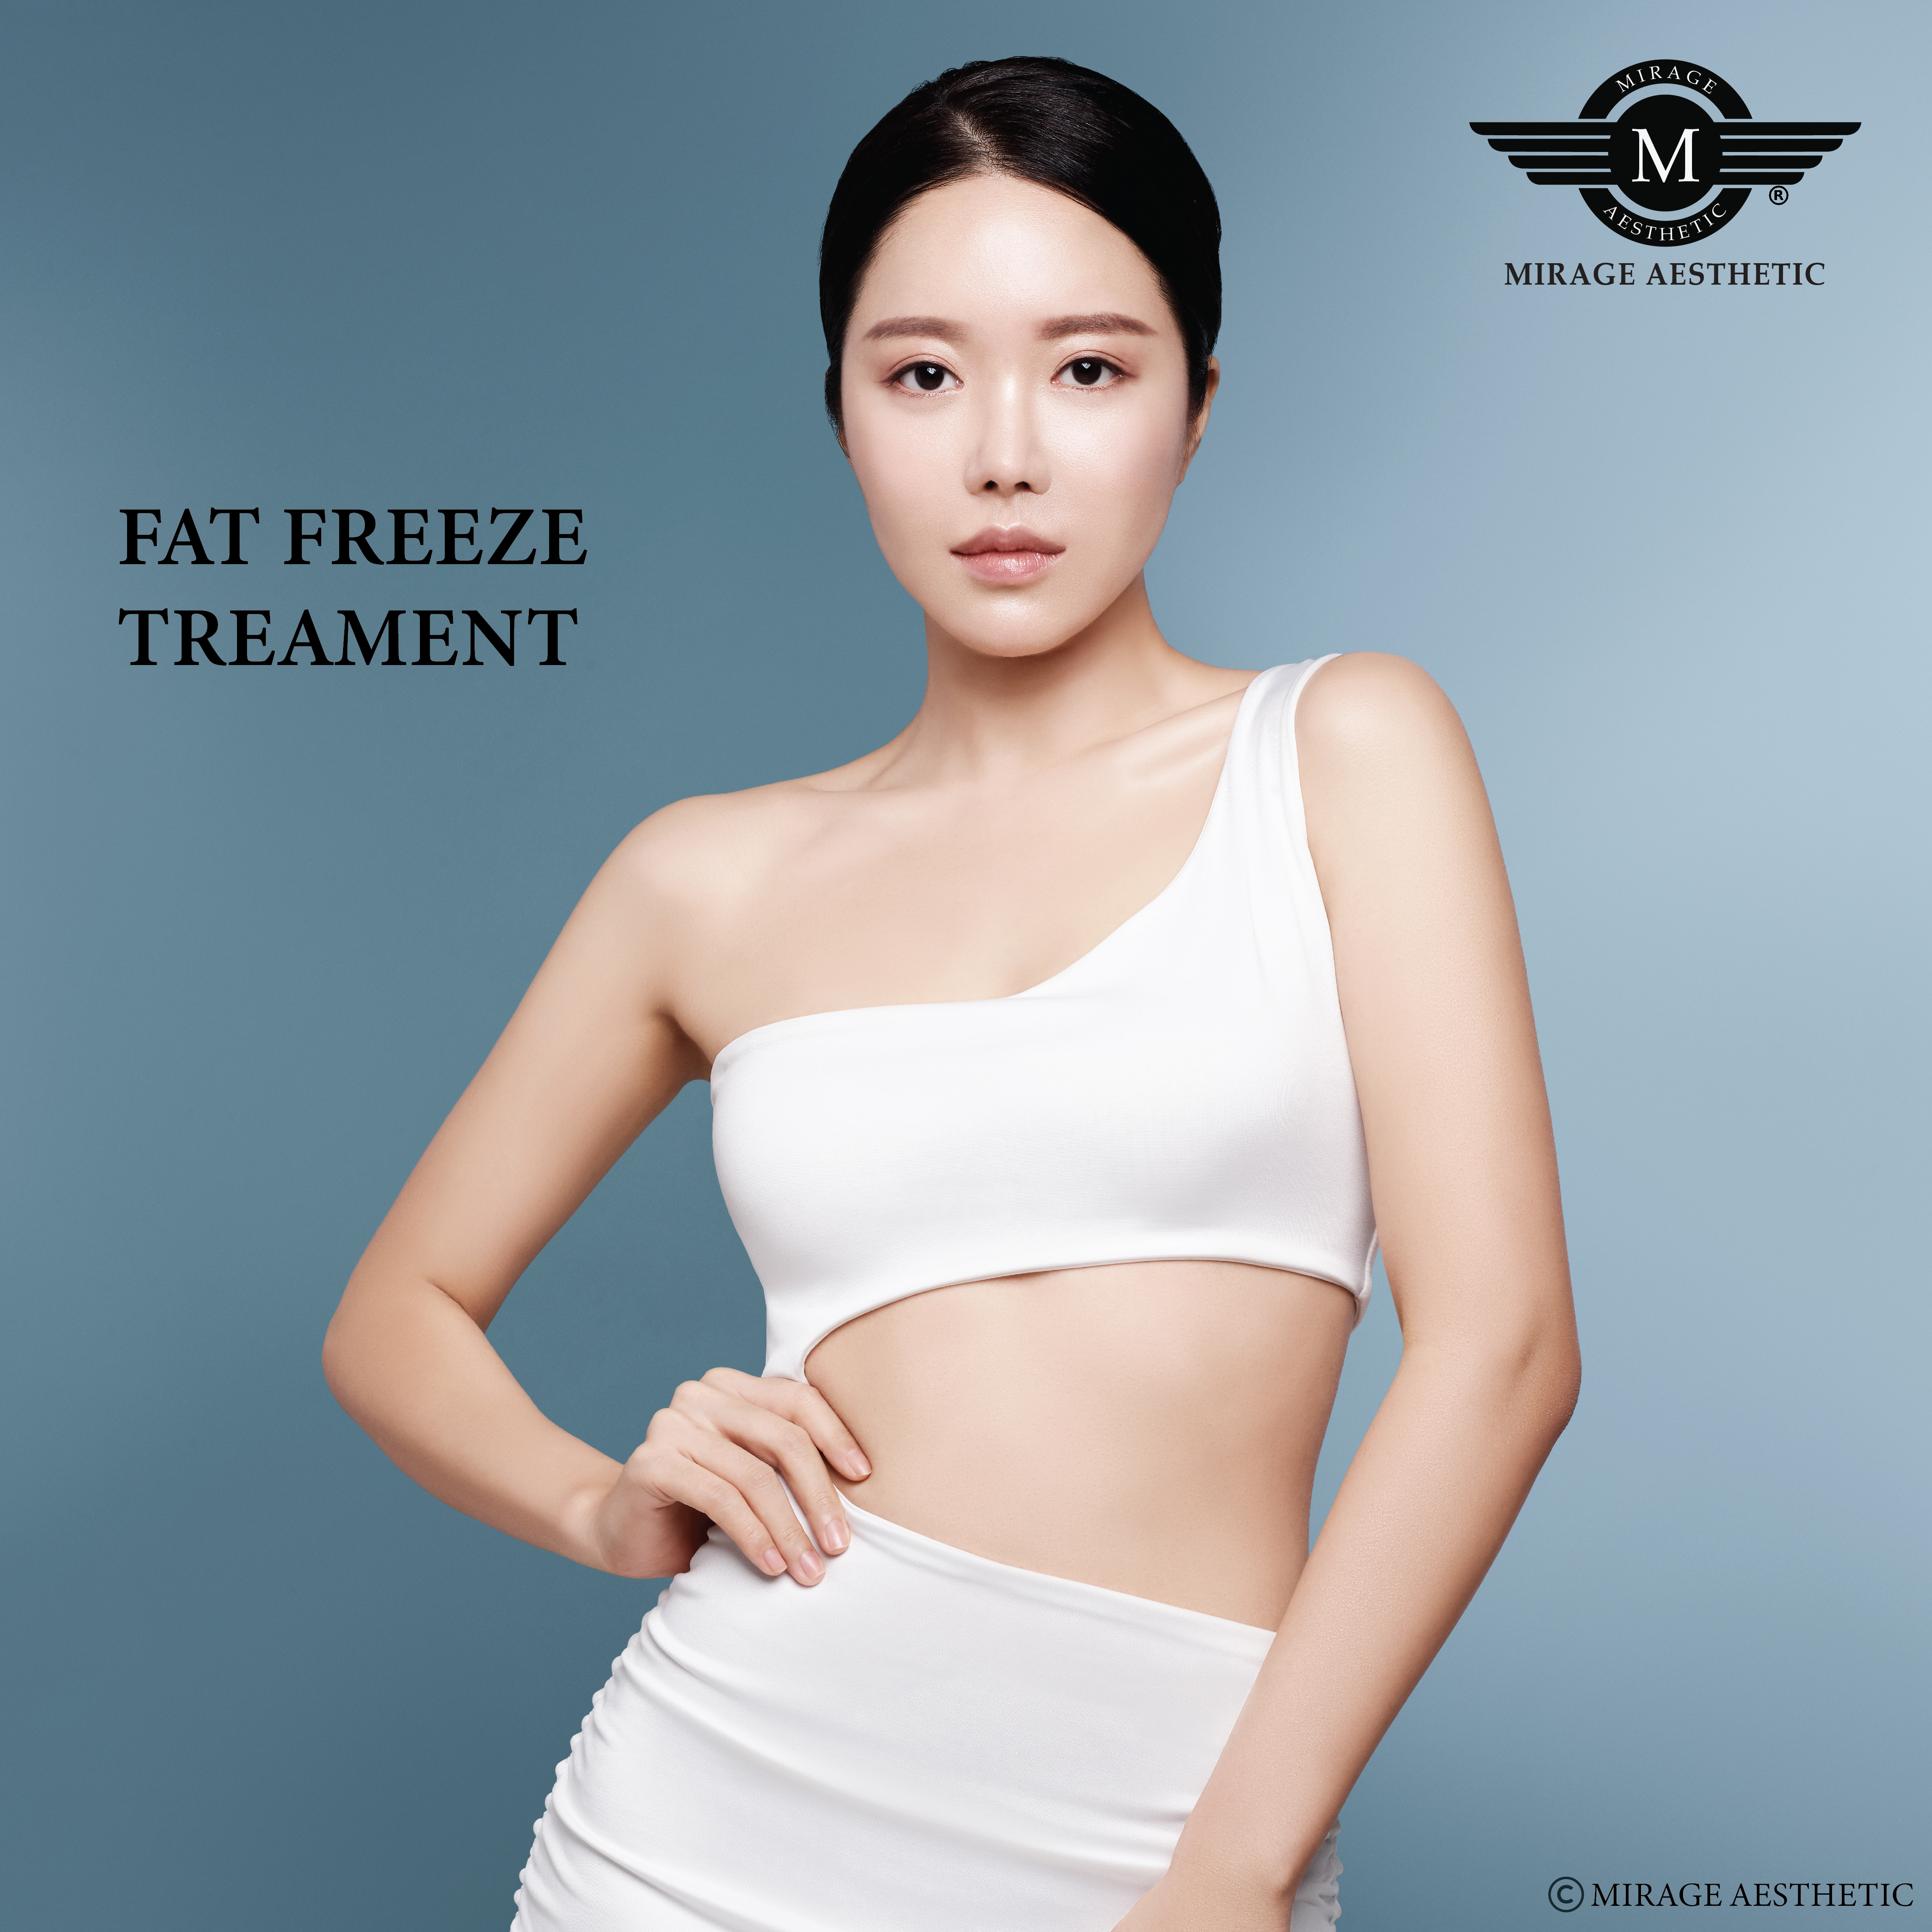 Fat Freeze Treatment: Does It Work & Is the Procedure Safe?